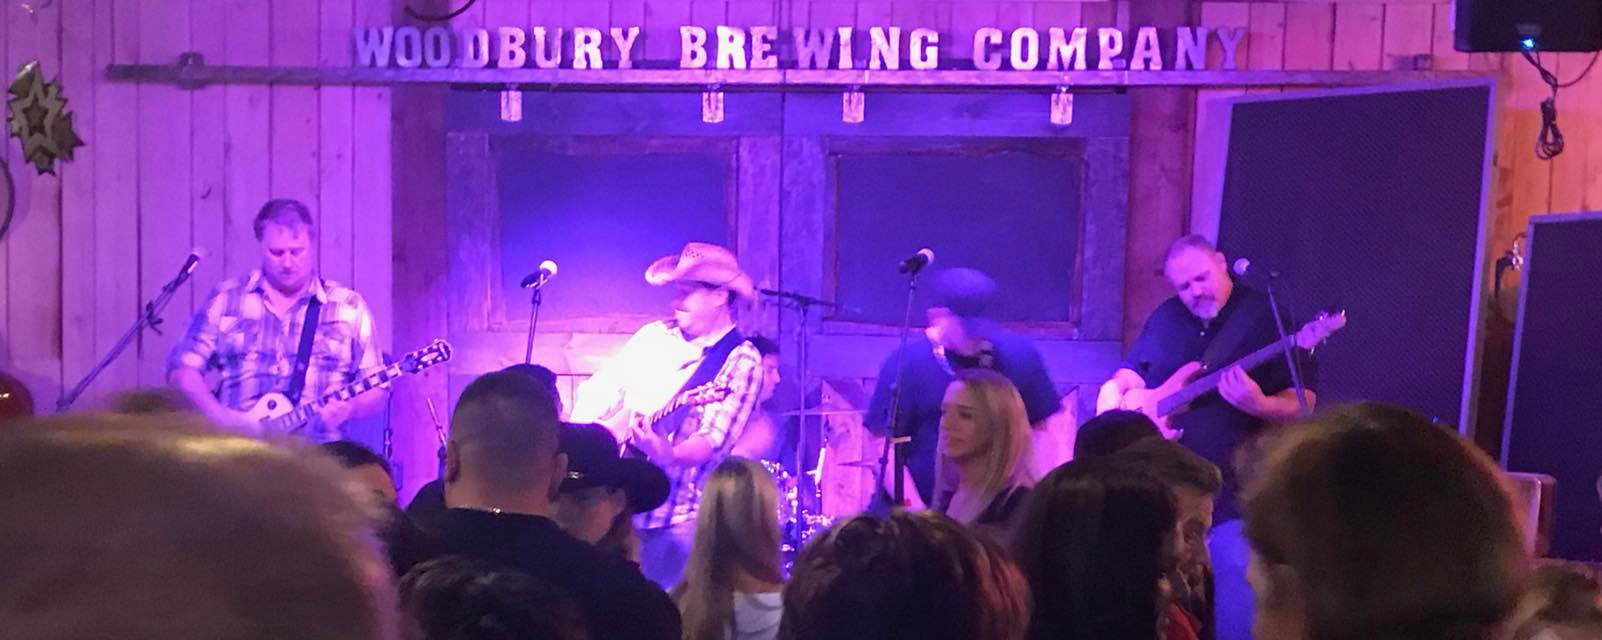 WoodburyBrewing